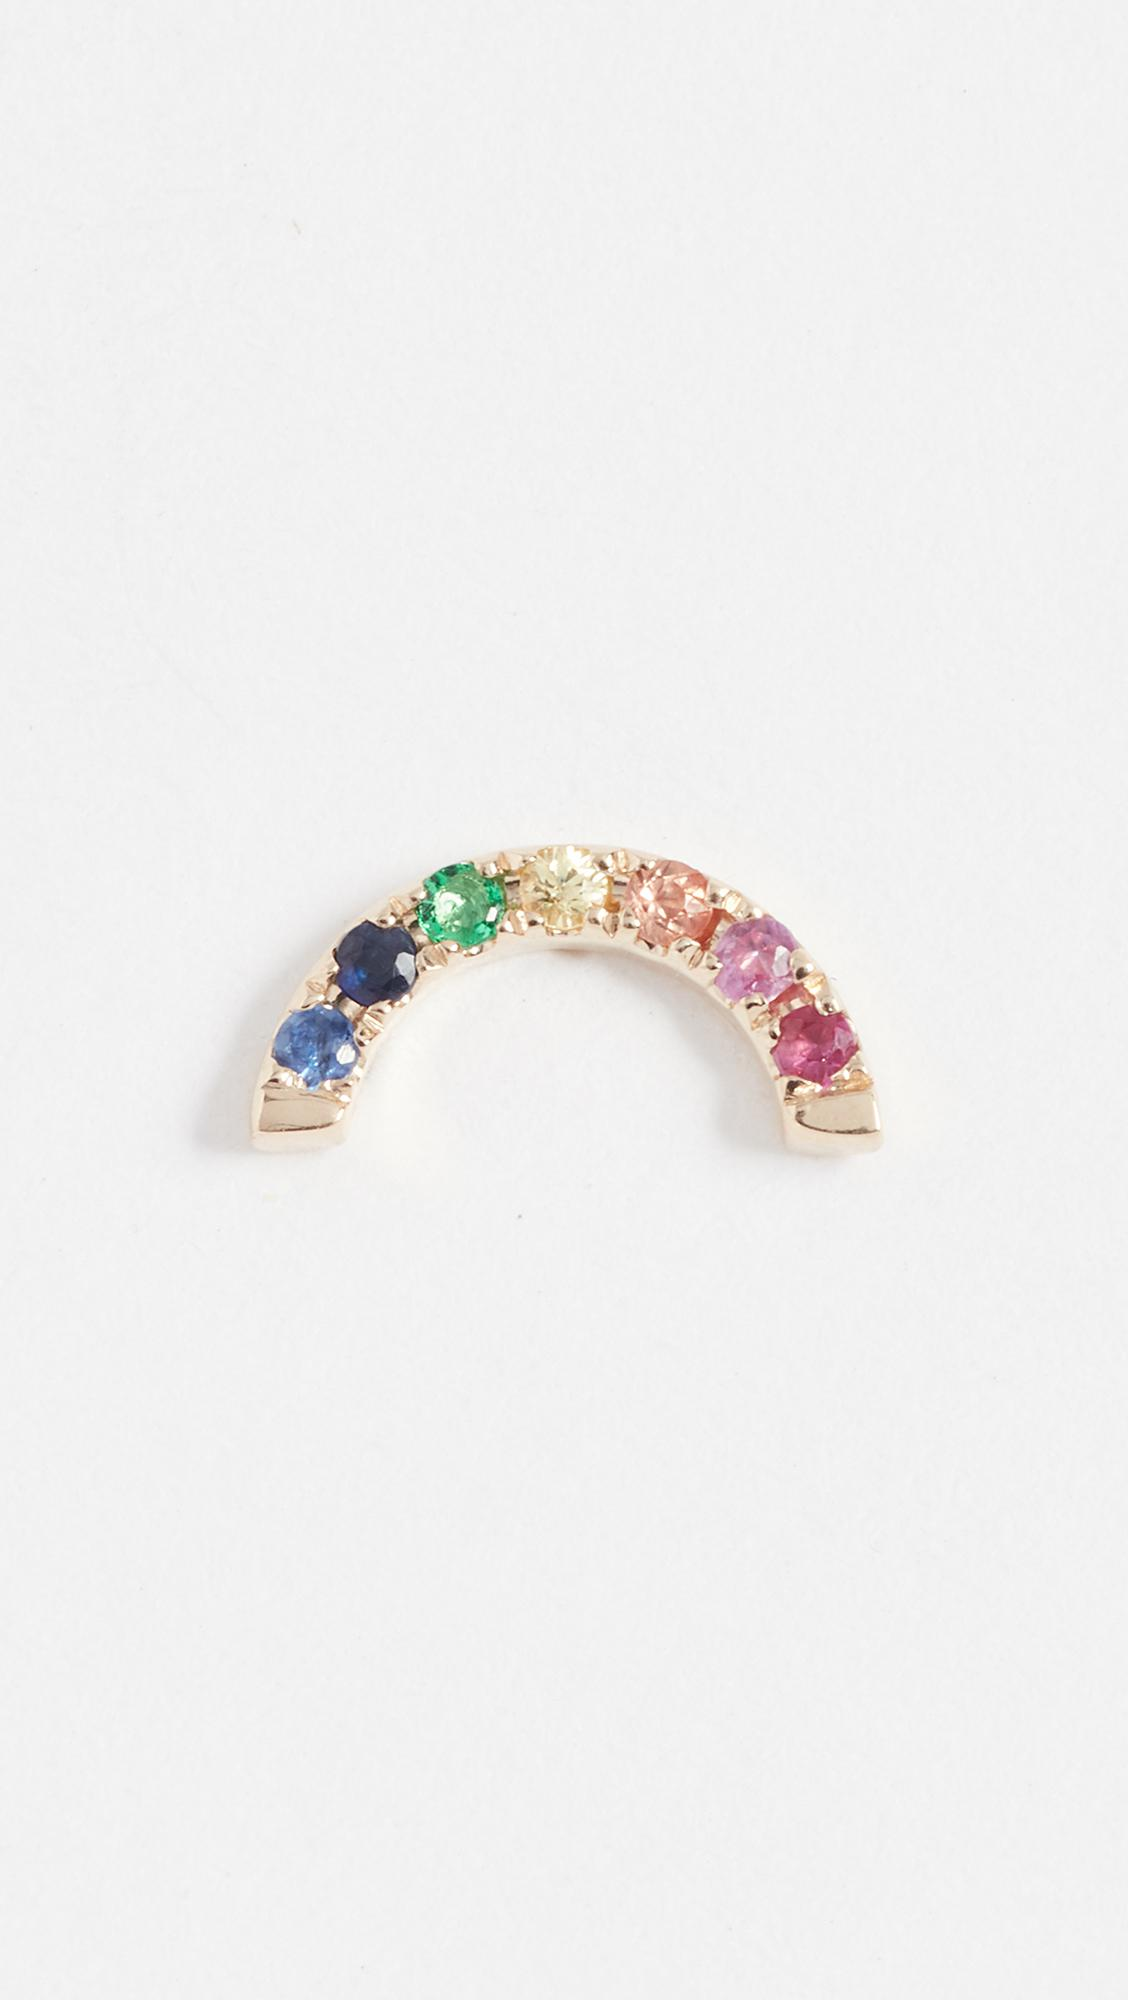 EF Collection 14k Gold Rainbow Ear Cuff jvvg0xfdtc